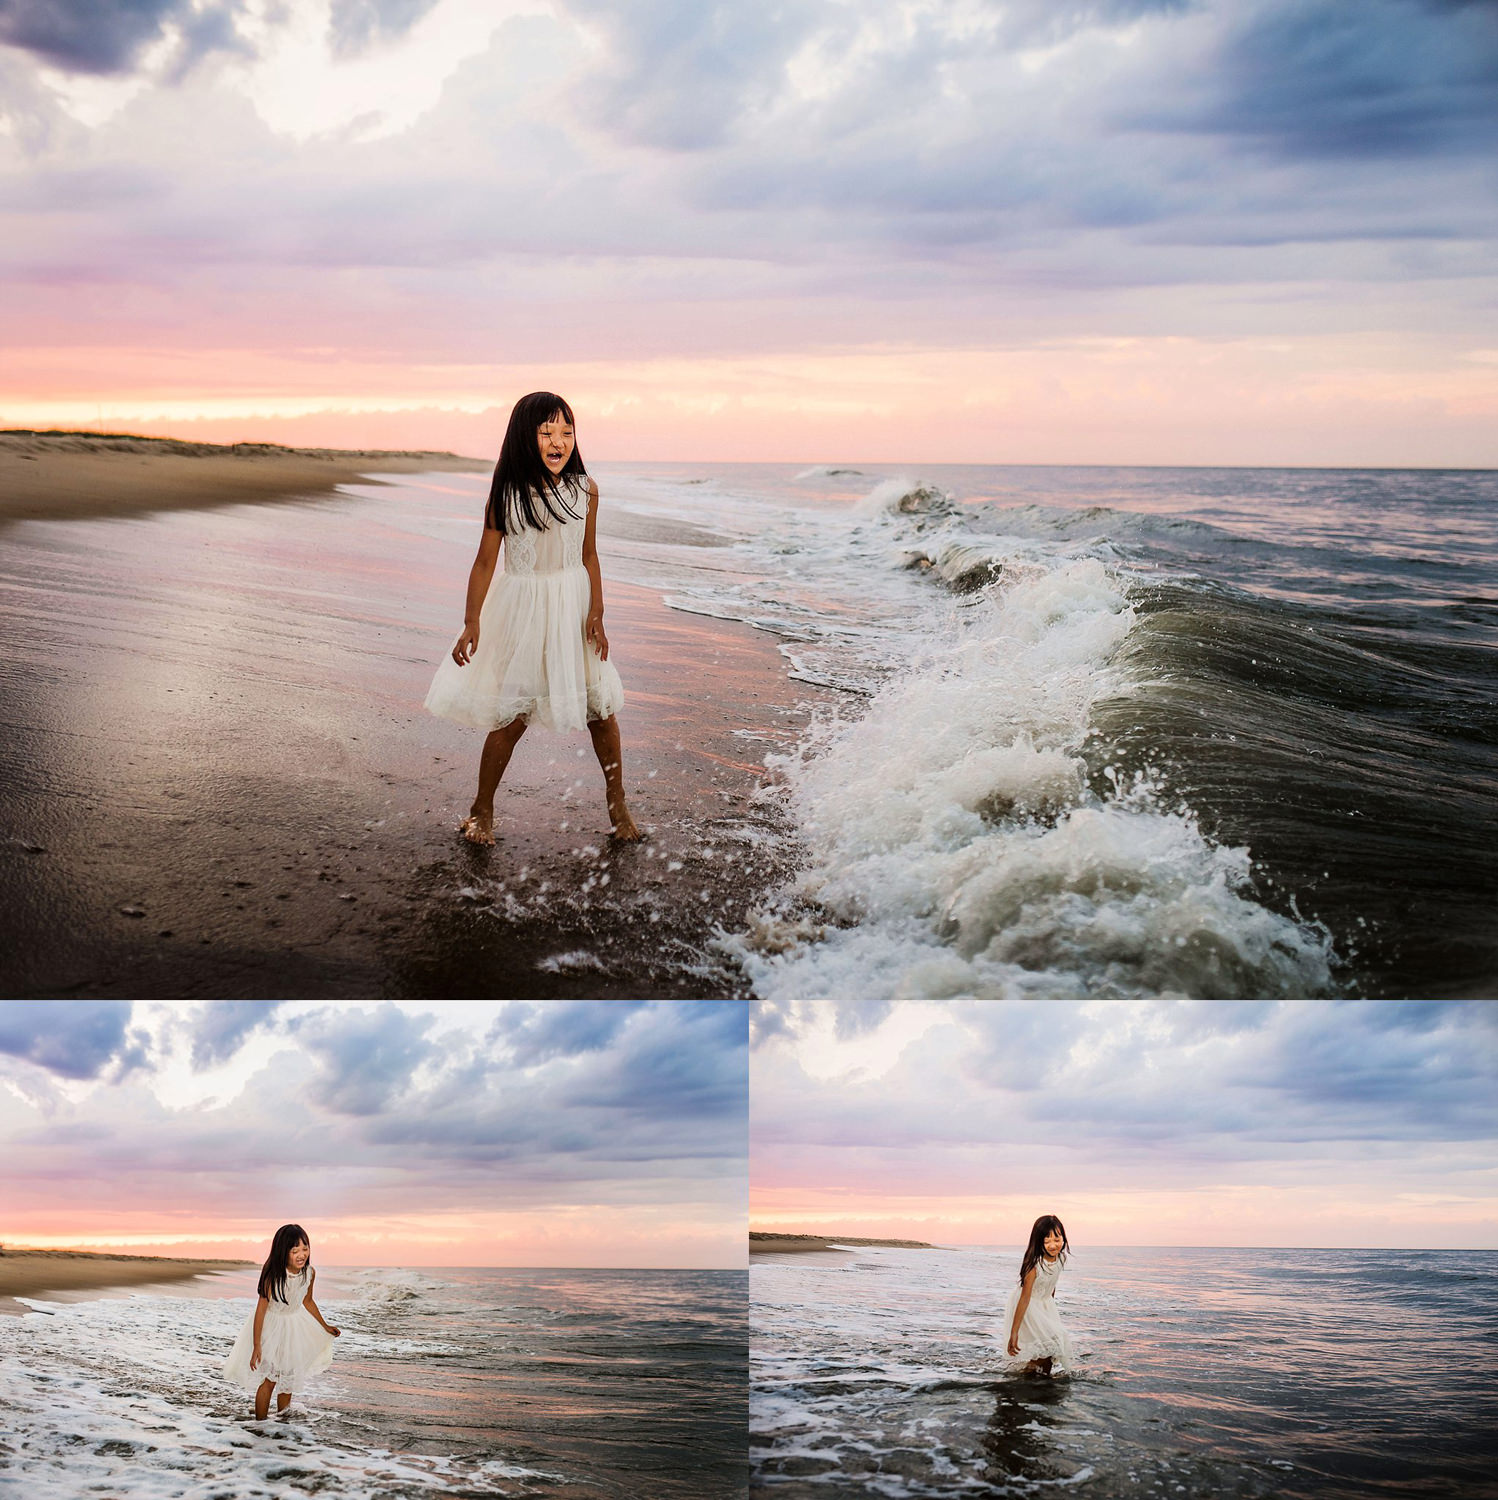 young-girl-playing-in-the-surf-at-sunset-virginia-beach-family-photographer-melissa-bliss-photography.jpg